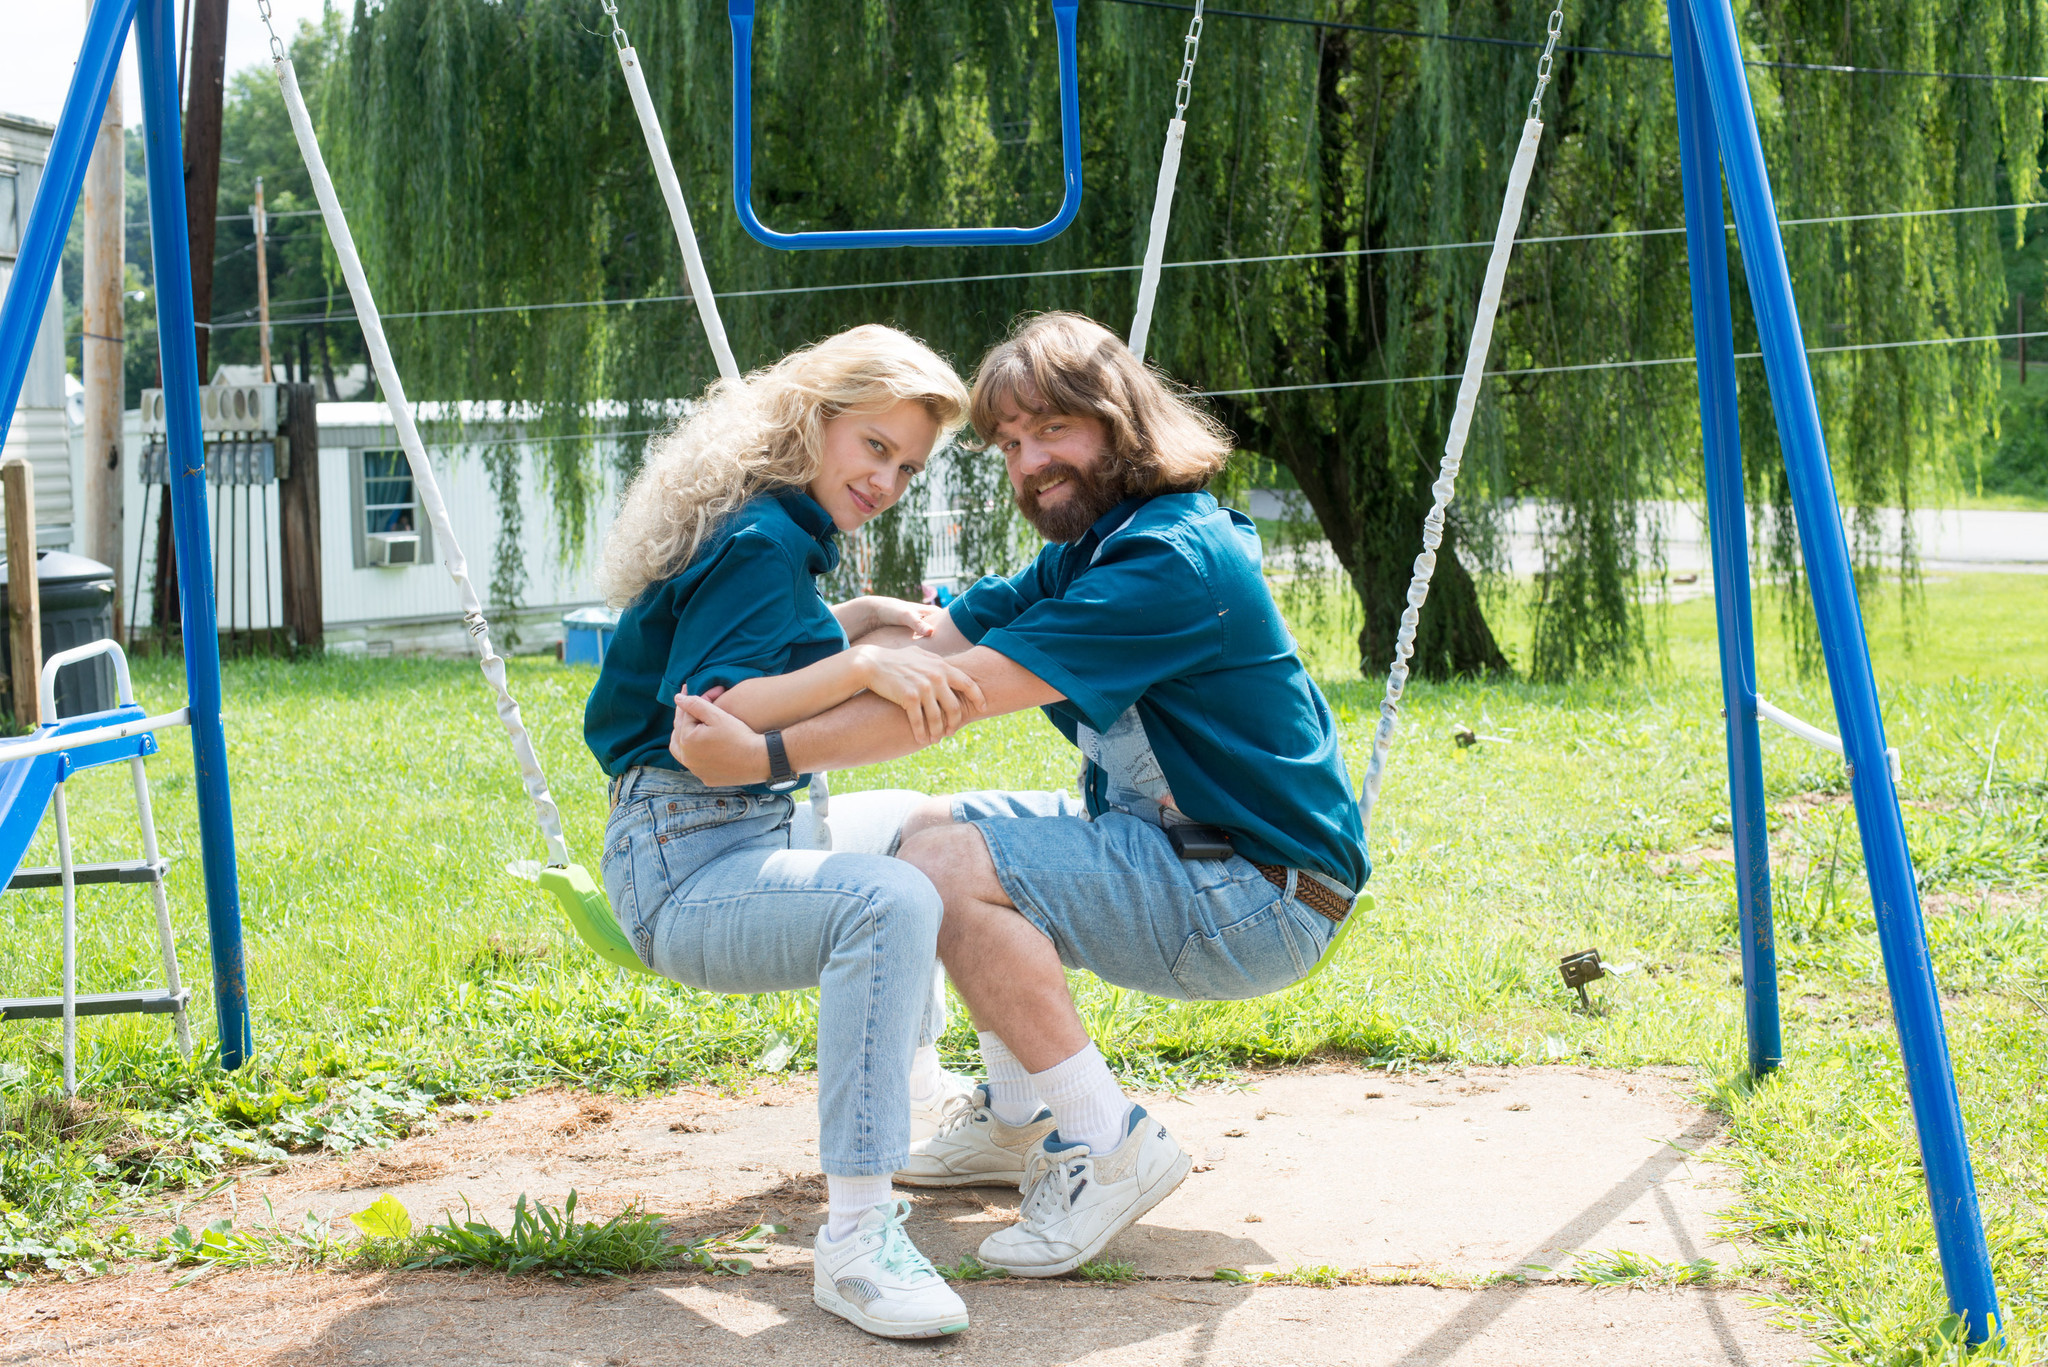 cheesy 80s engagemnt photoshoot from the Masterminds movie!